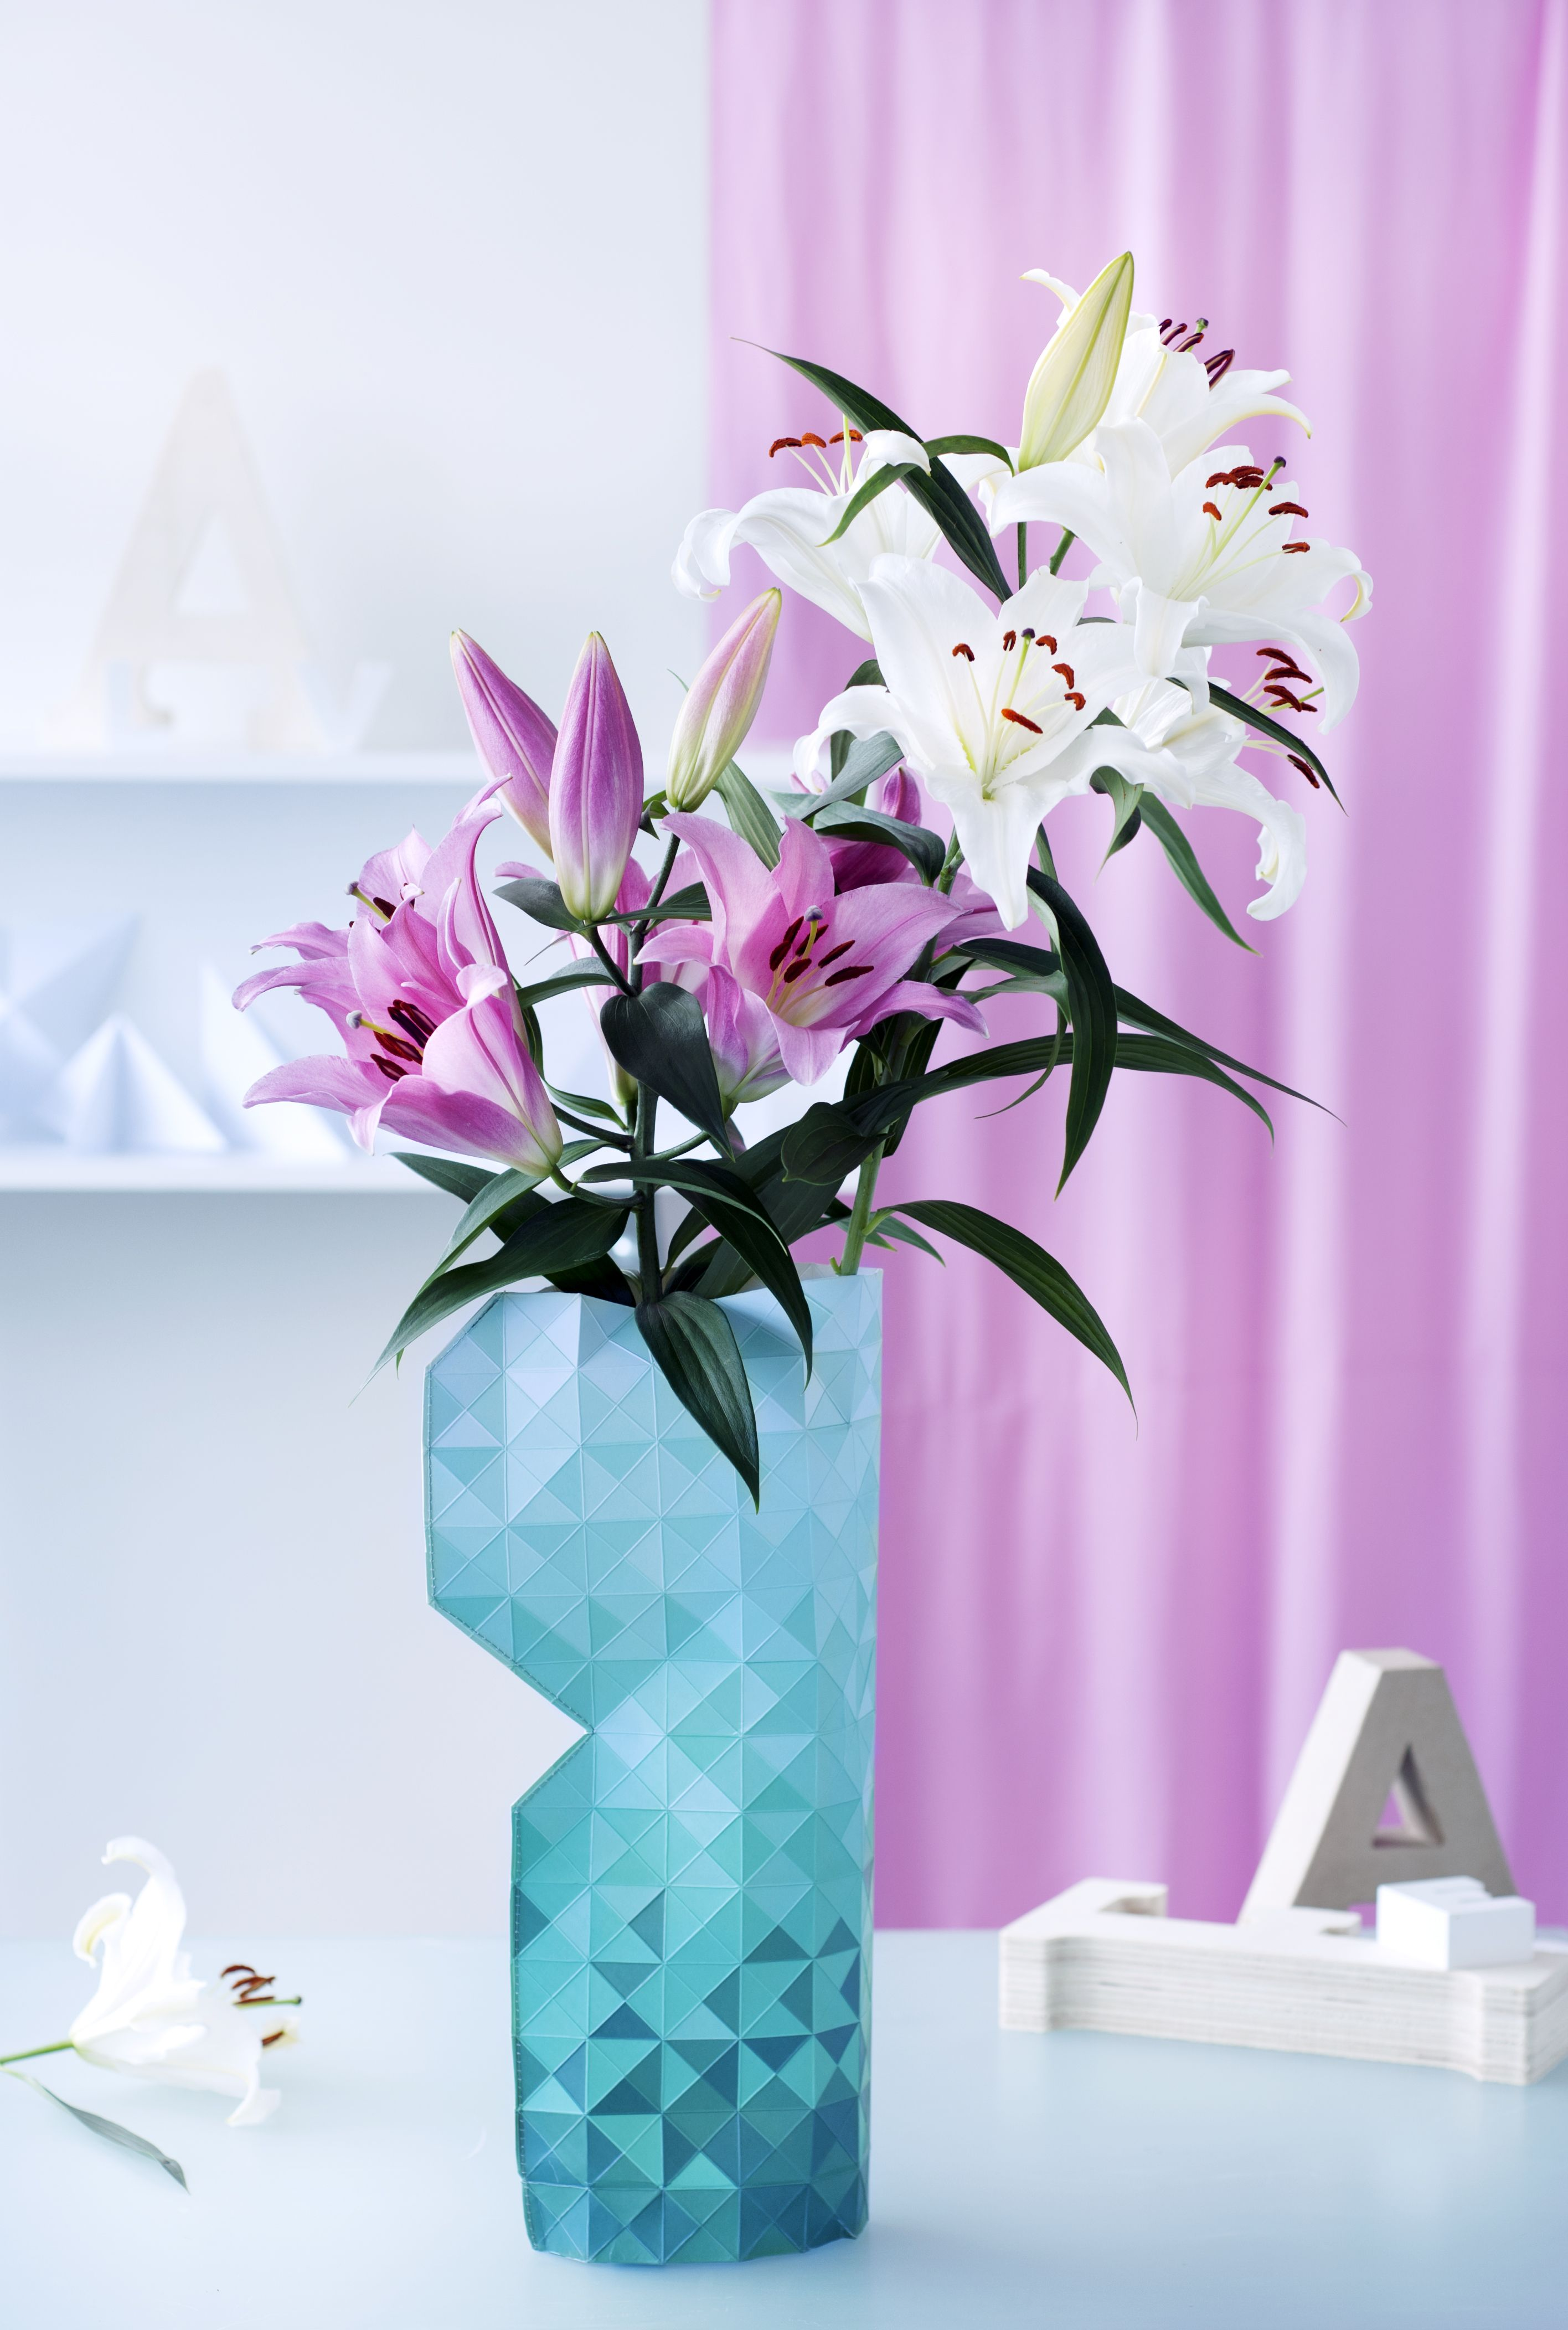 Flowers always add joy to a room but flowers have different flowers always add joy to a room but flowers have different meanings when given as a gift or displayed around the house featuring a lily in your home can izmirmasajfo